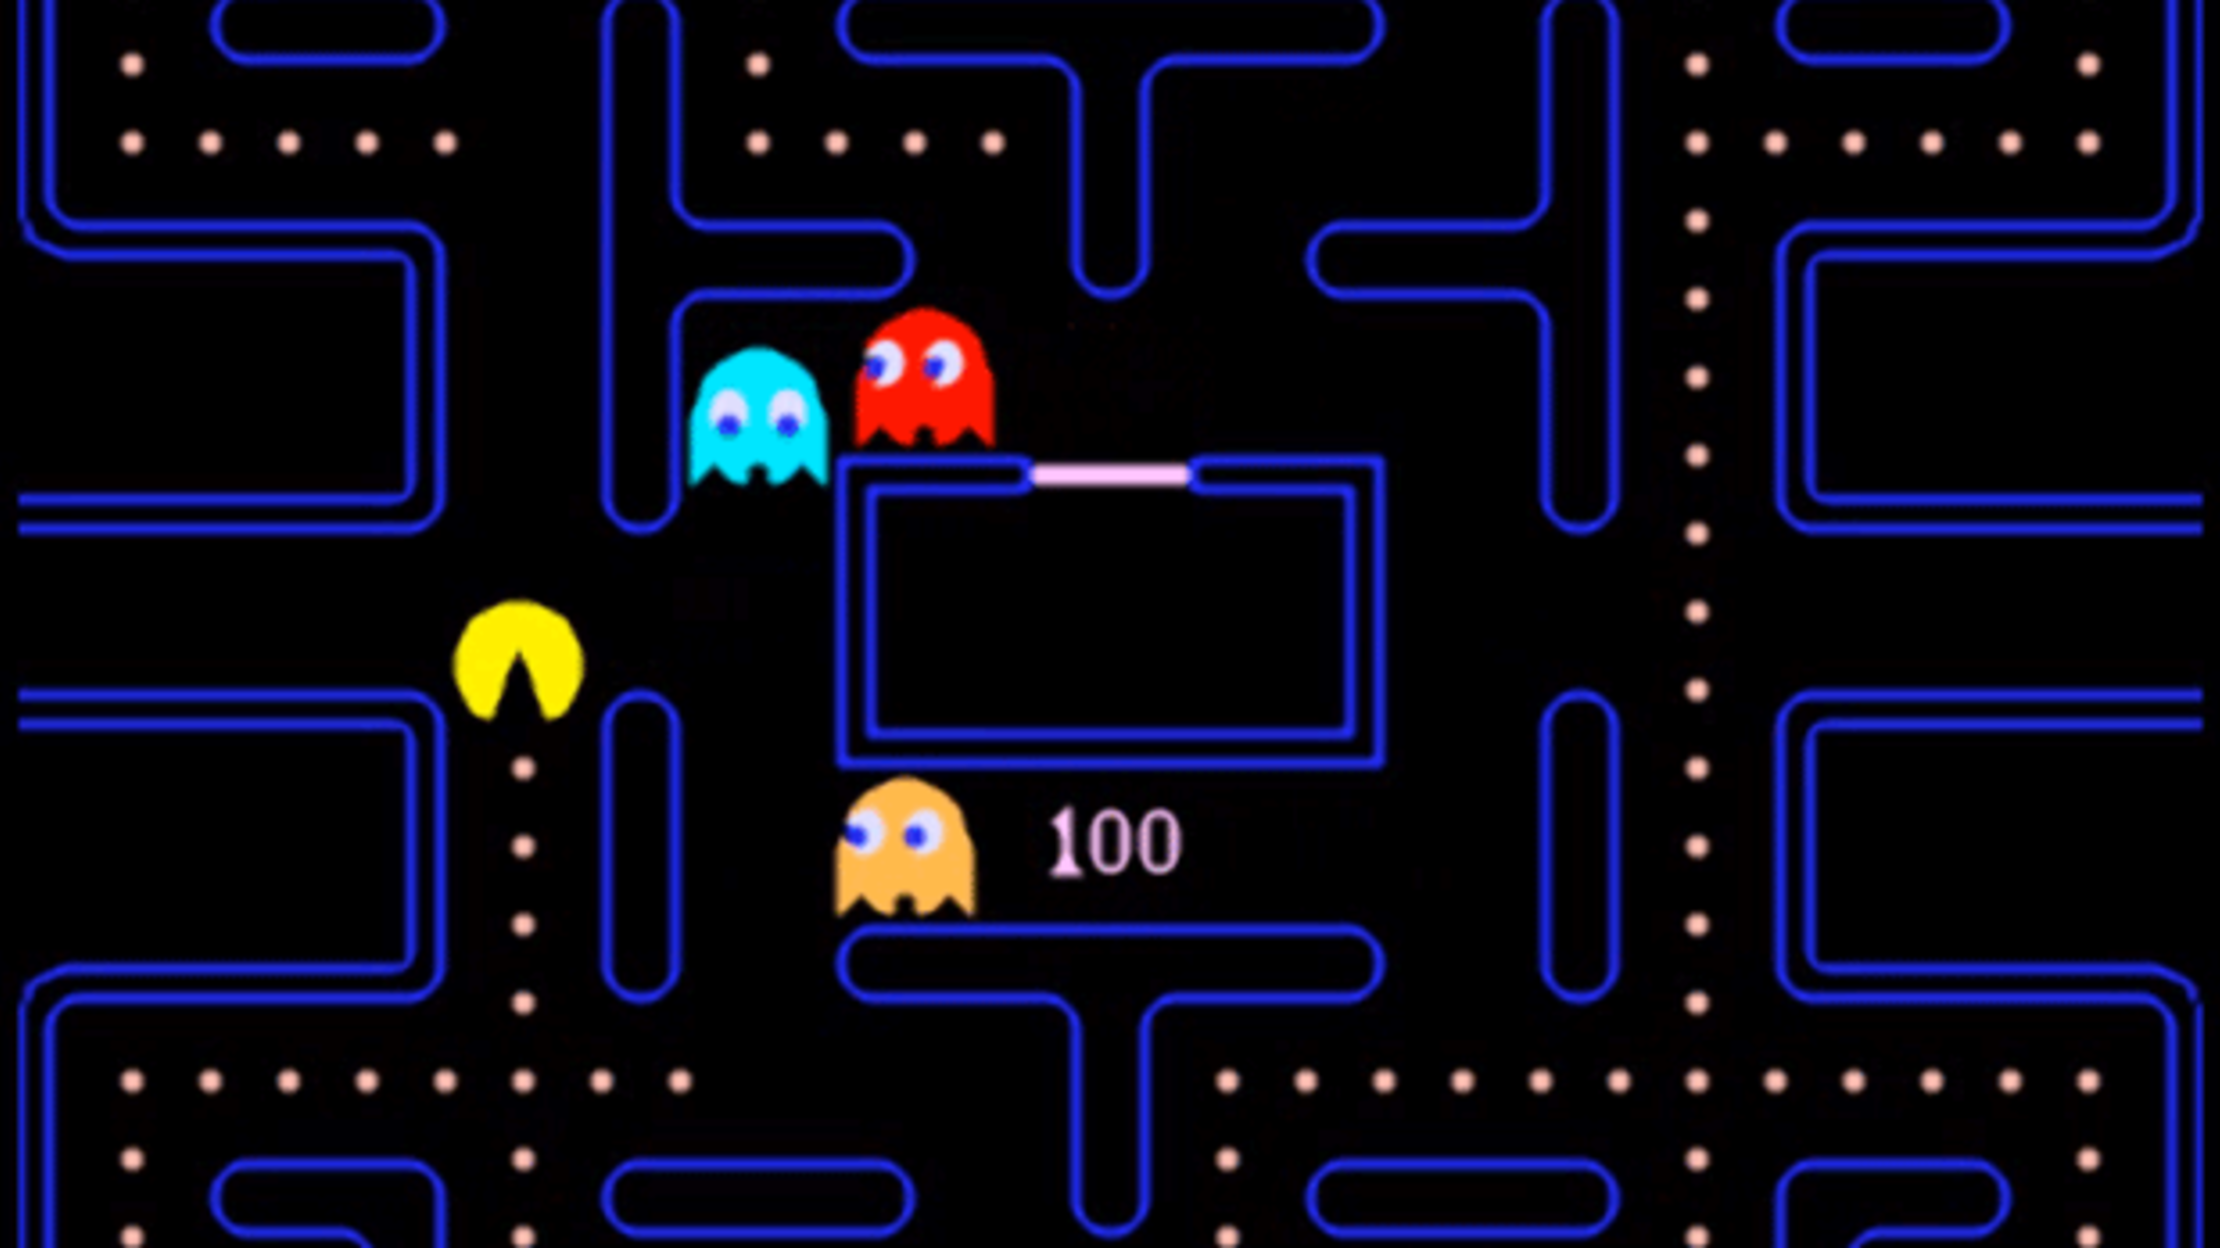 This is a picture of Zany Pictures of Pacman Ghosts